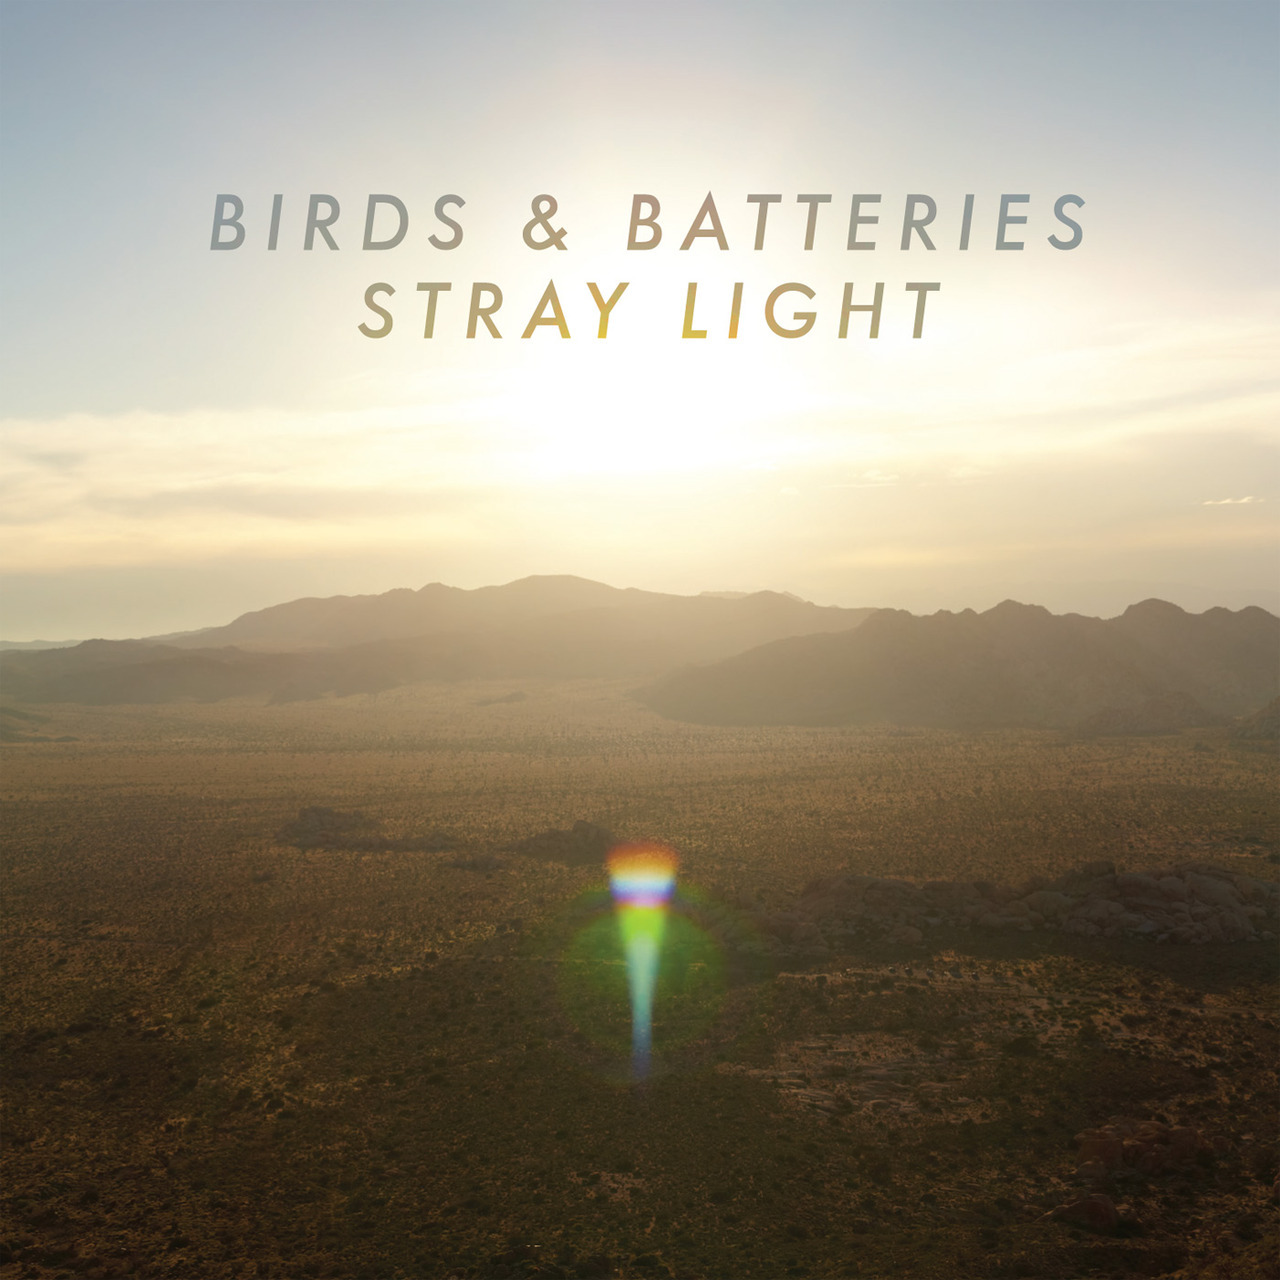 my photo for Birds and Batteries new album cover.   check it out here www.soundcloud.com/birdsandbatteries/sets/stray-light